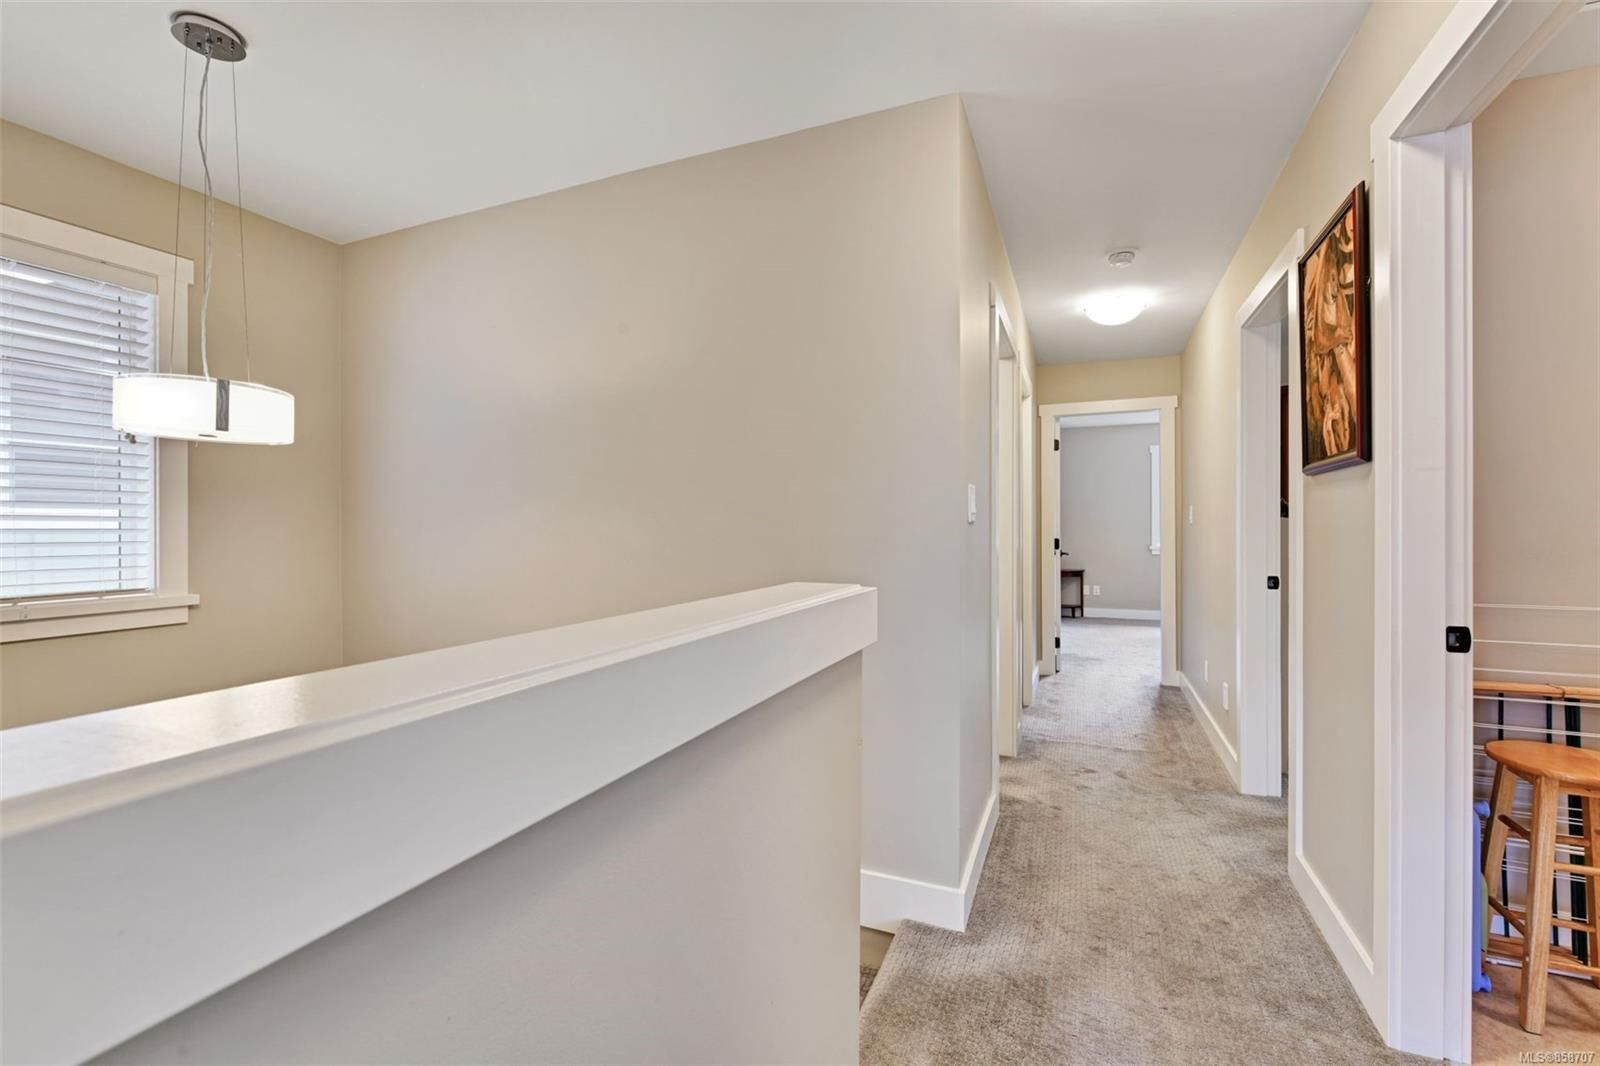 Photo 12: Photos: 1262 McLeod Pl in : La Happy Valley House for sale (Langford)  : MLS®# 858707